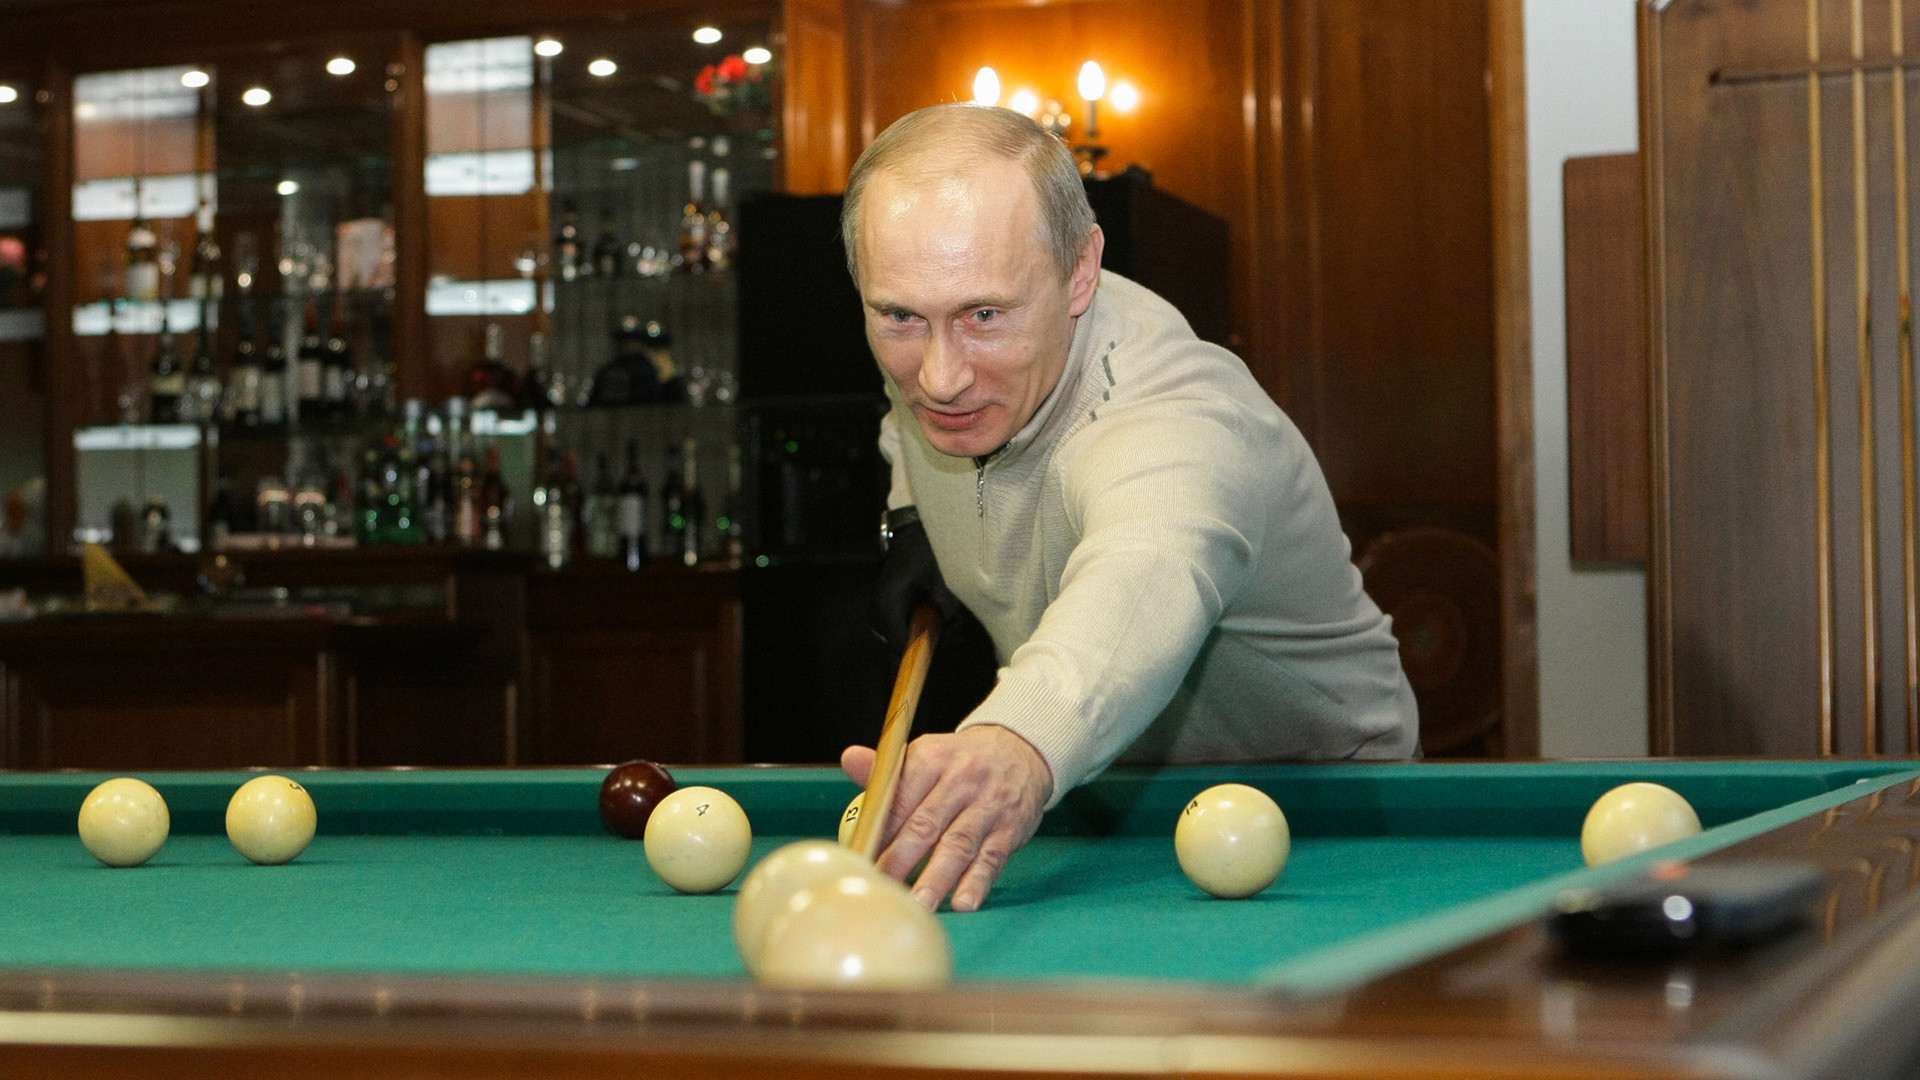 8 Official Residences Of Russia S President Vladimir Putin Russia Beyond